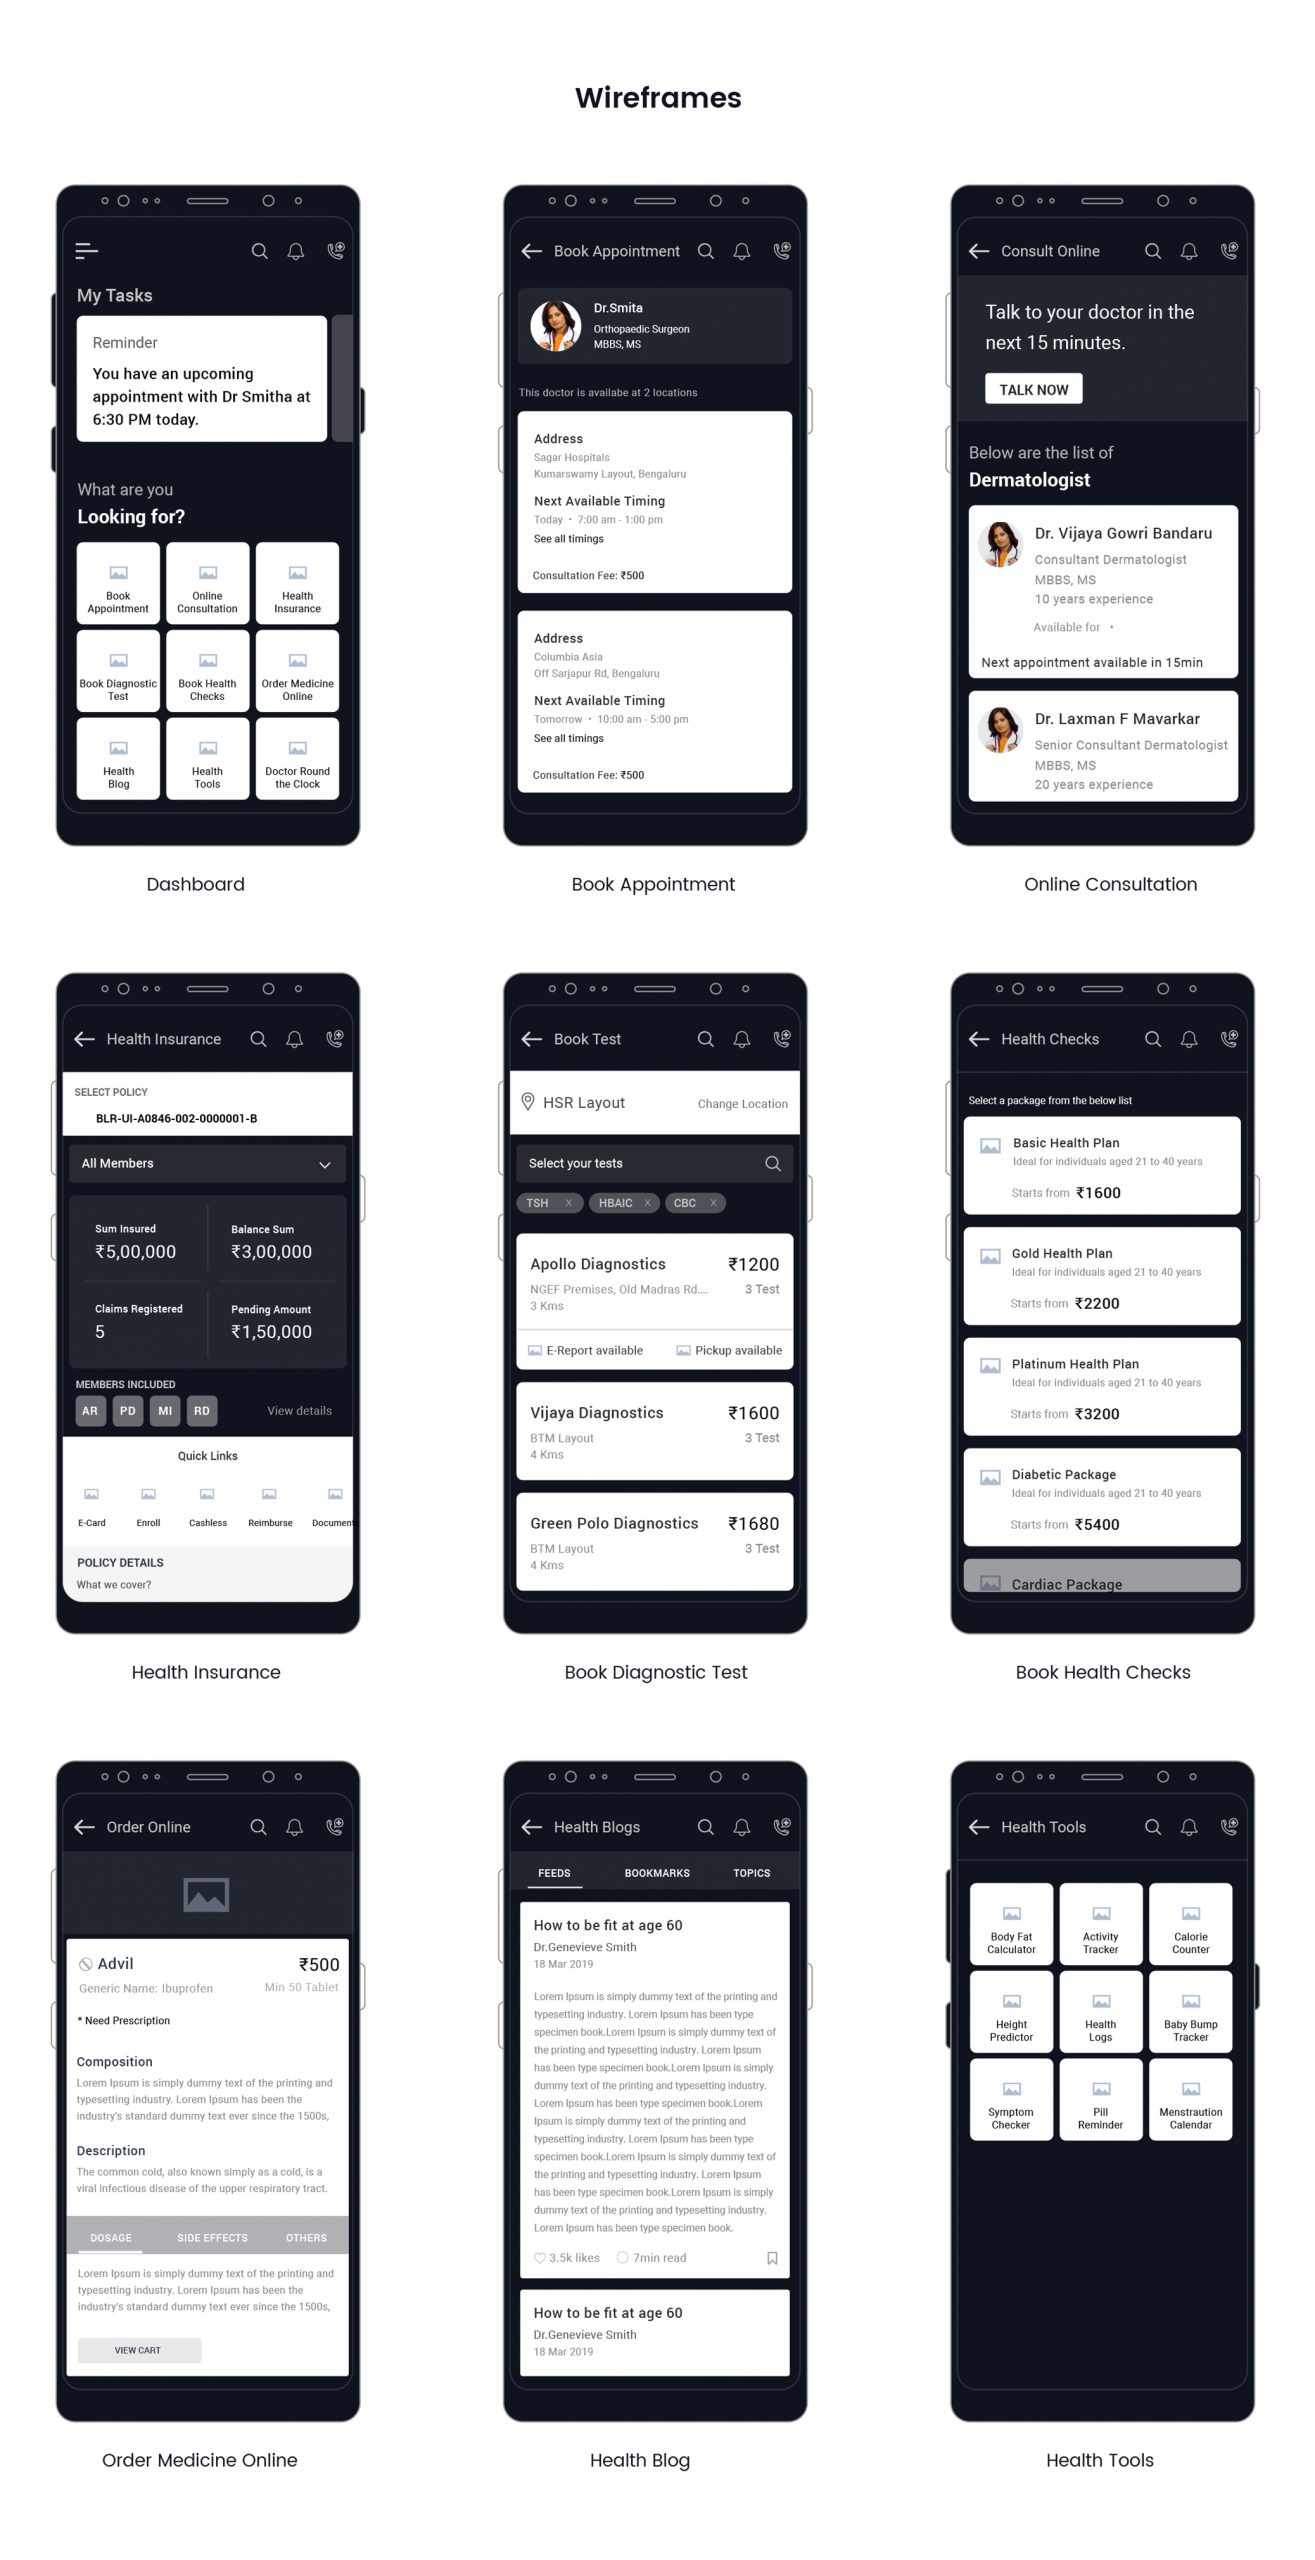 Mobile Health App - Wireframes